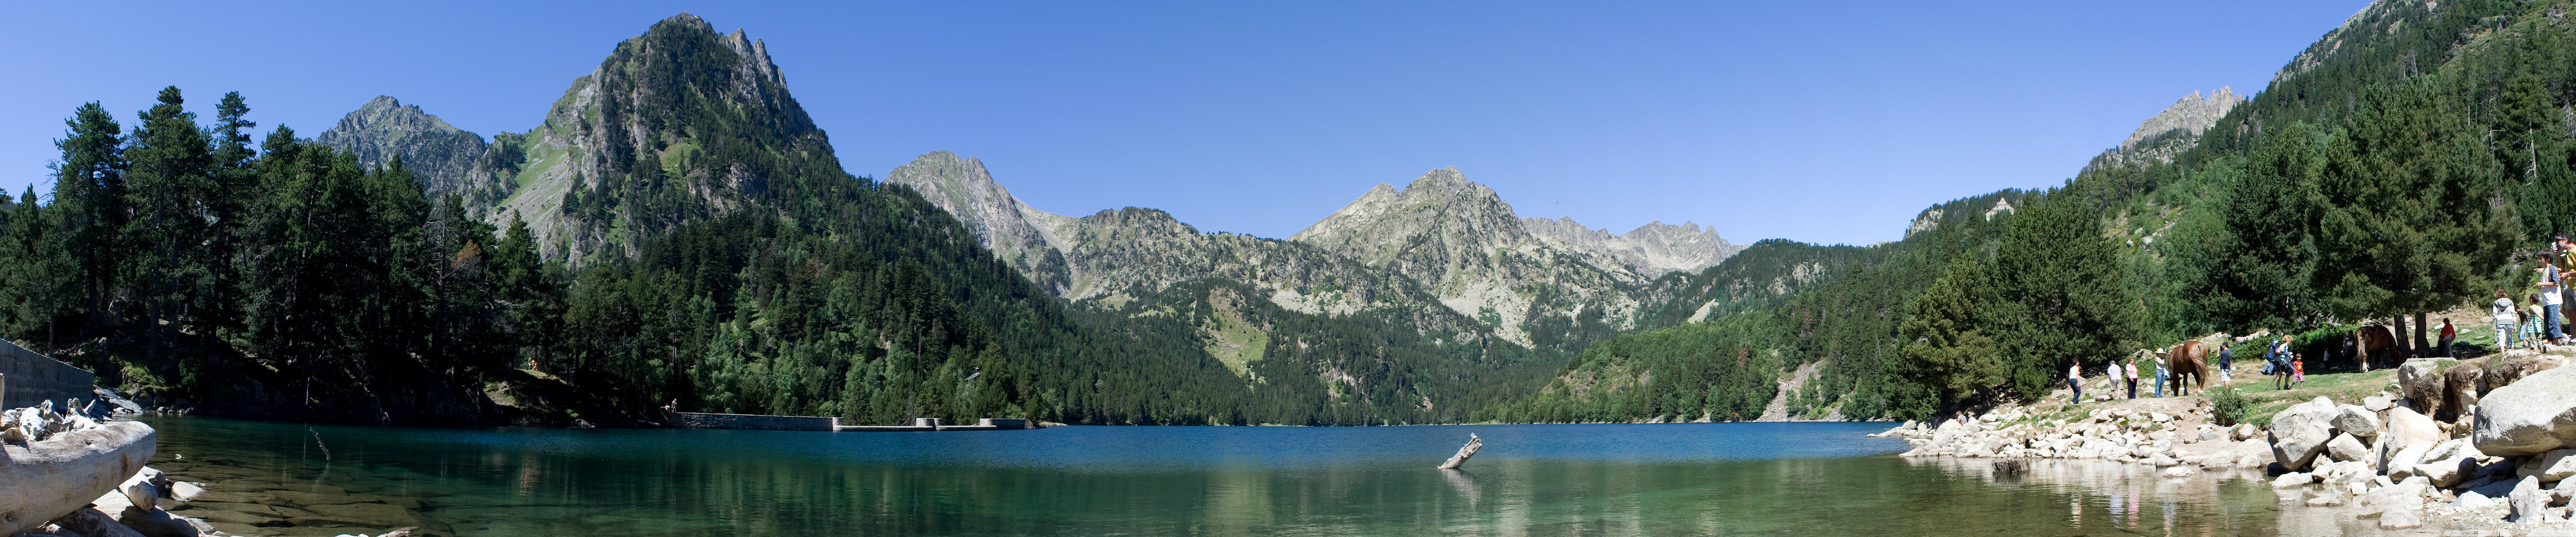 Source URL httpjuanmahwordpresscom20081104estany de sant 7680x1600